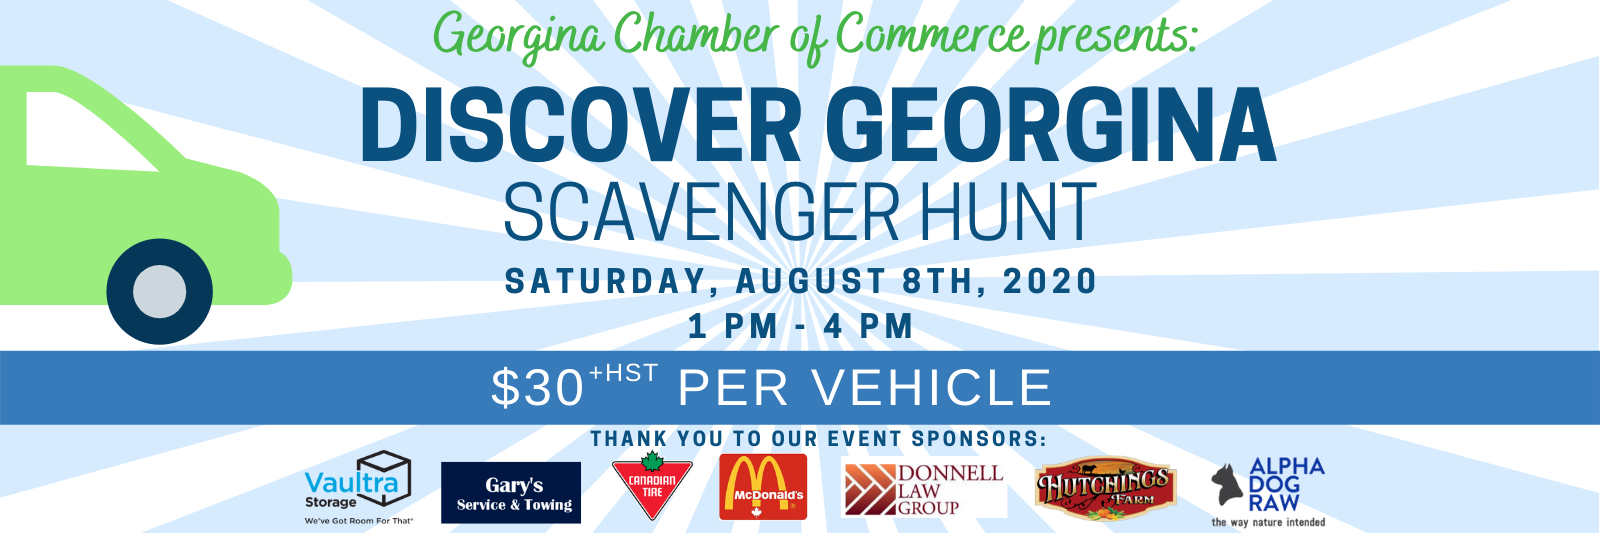 Website-Event-Banner-Scavenger-Hunt.png